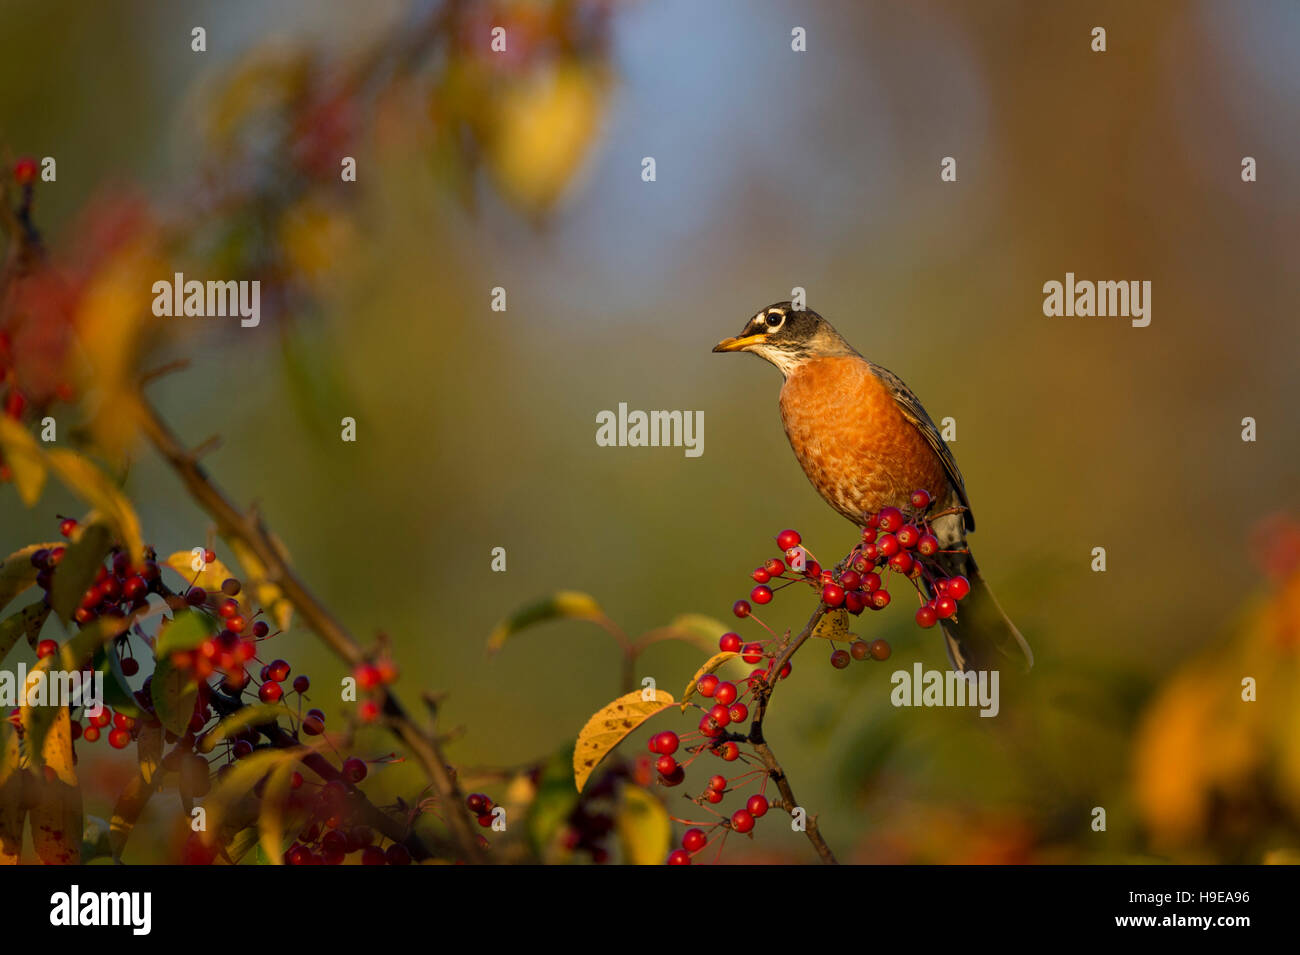 An American Robin perches on a branch covered in bright red berries in the beautiful early morning sunlight on a Stock Photo